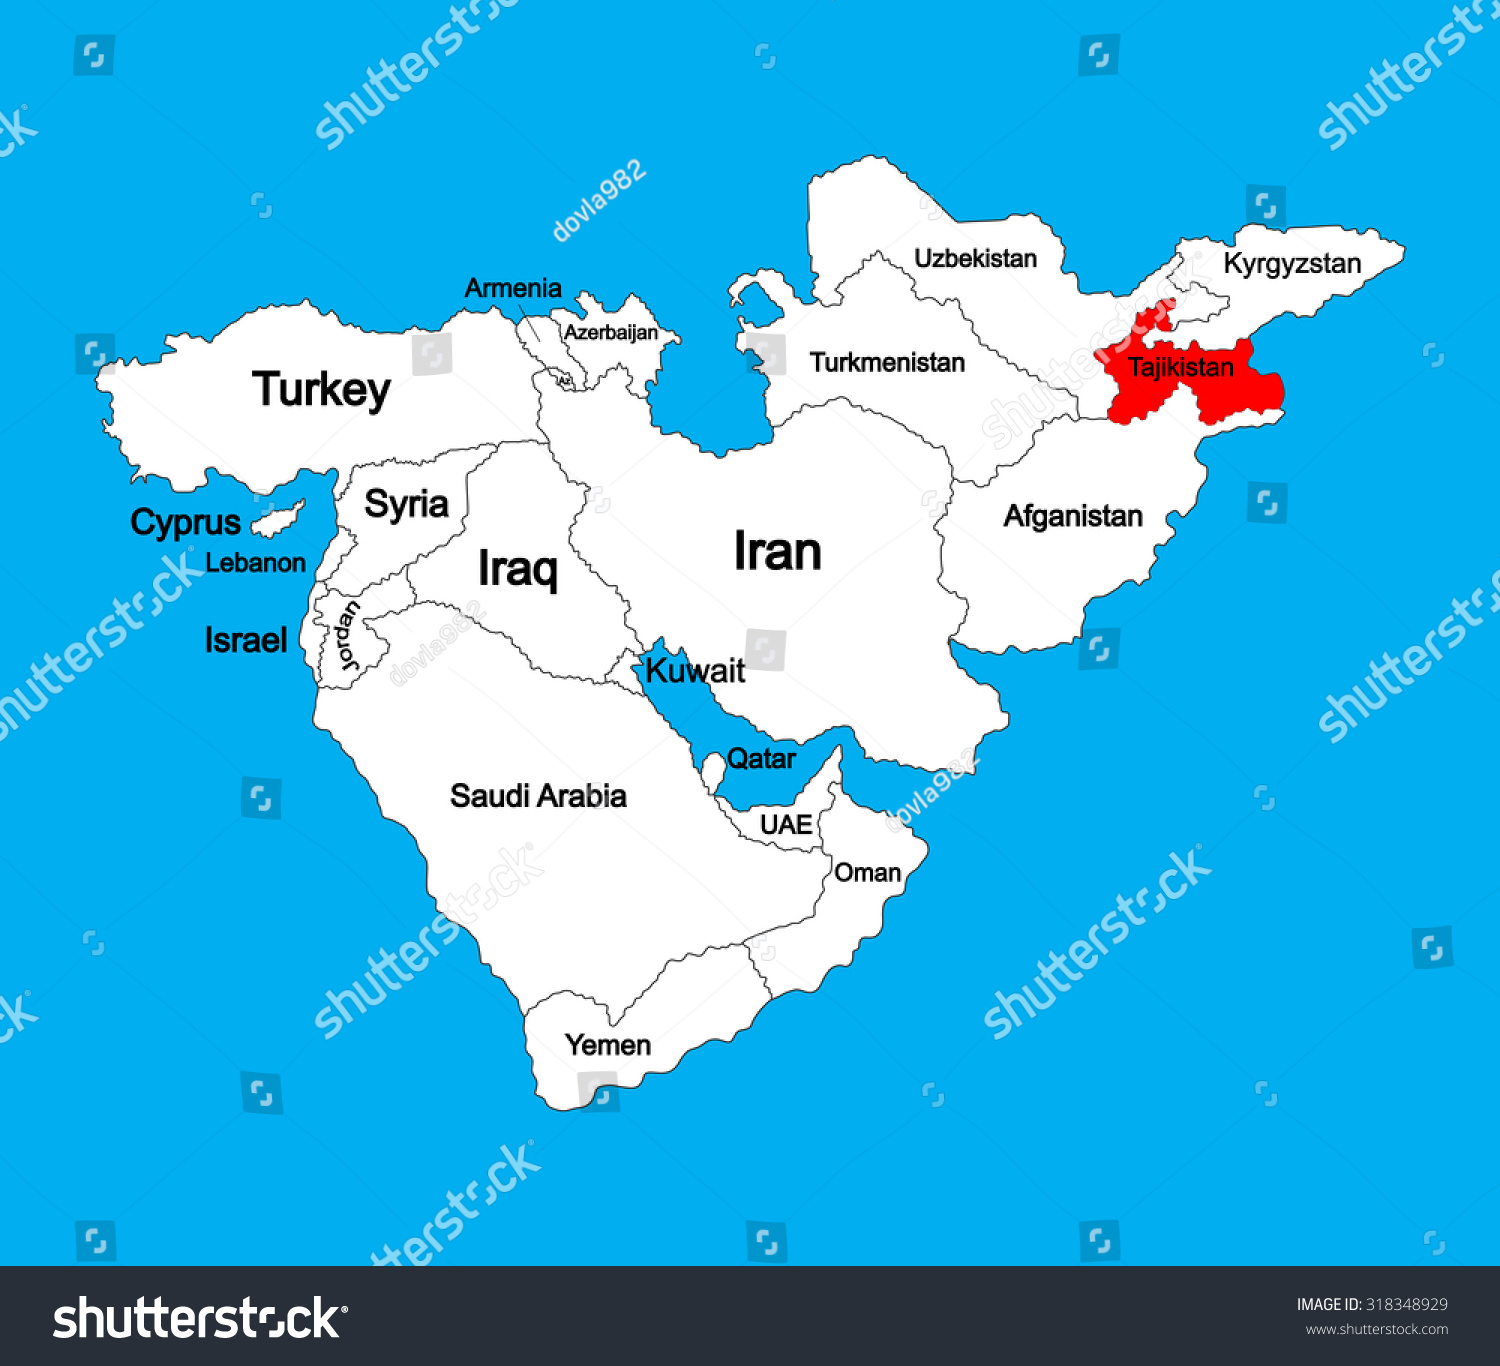 Tajikistan Vector Map Silhouette Illustration Isolated Stock - Middle east map dushanbe